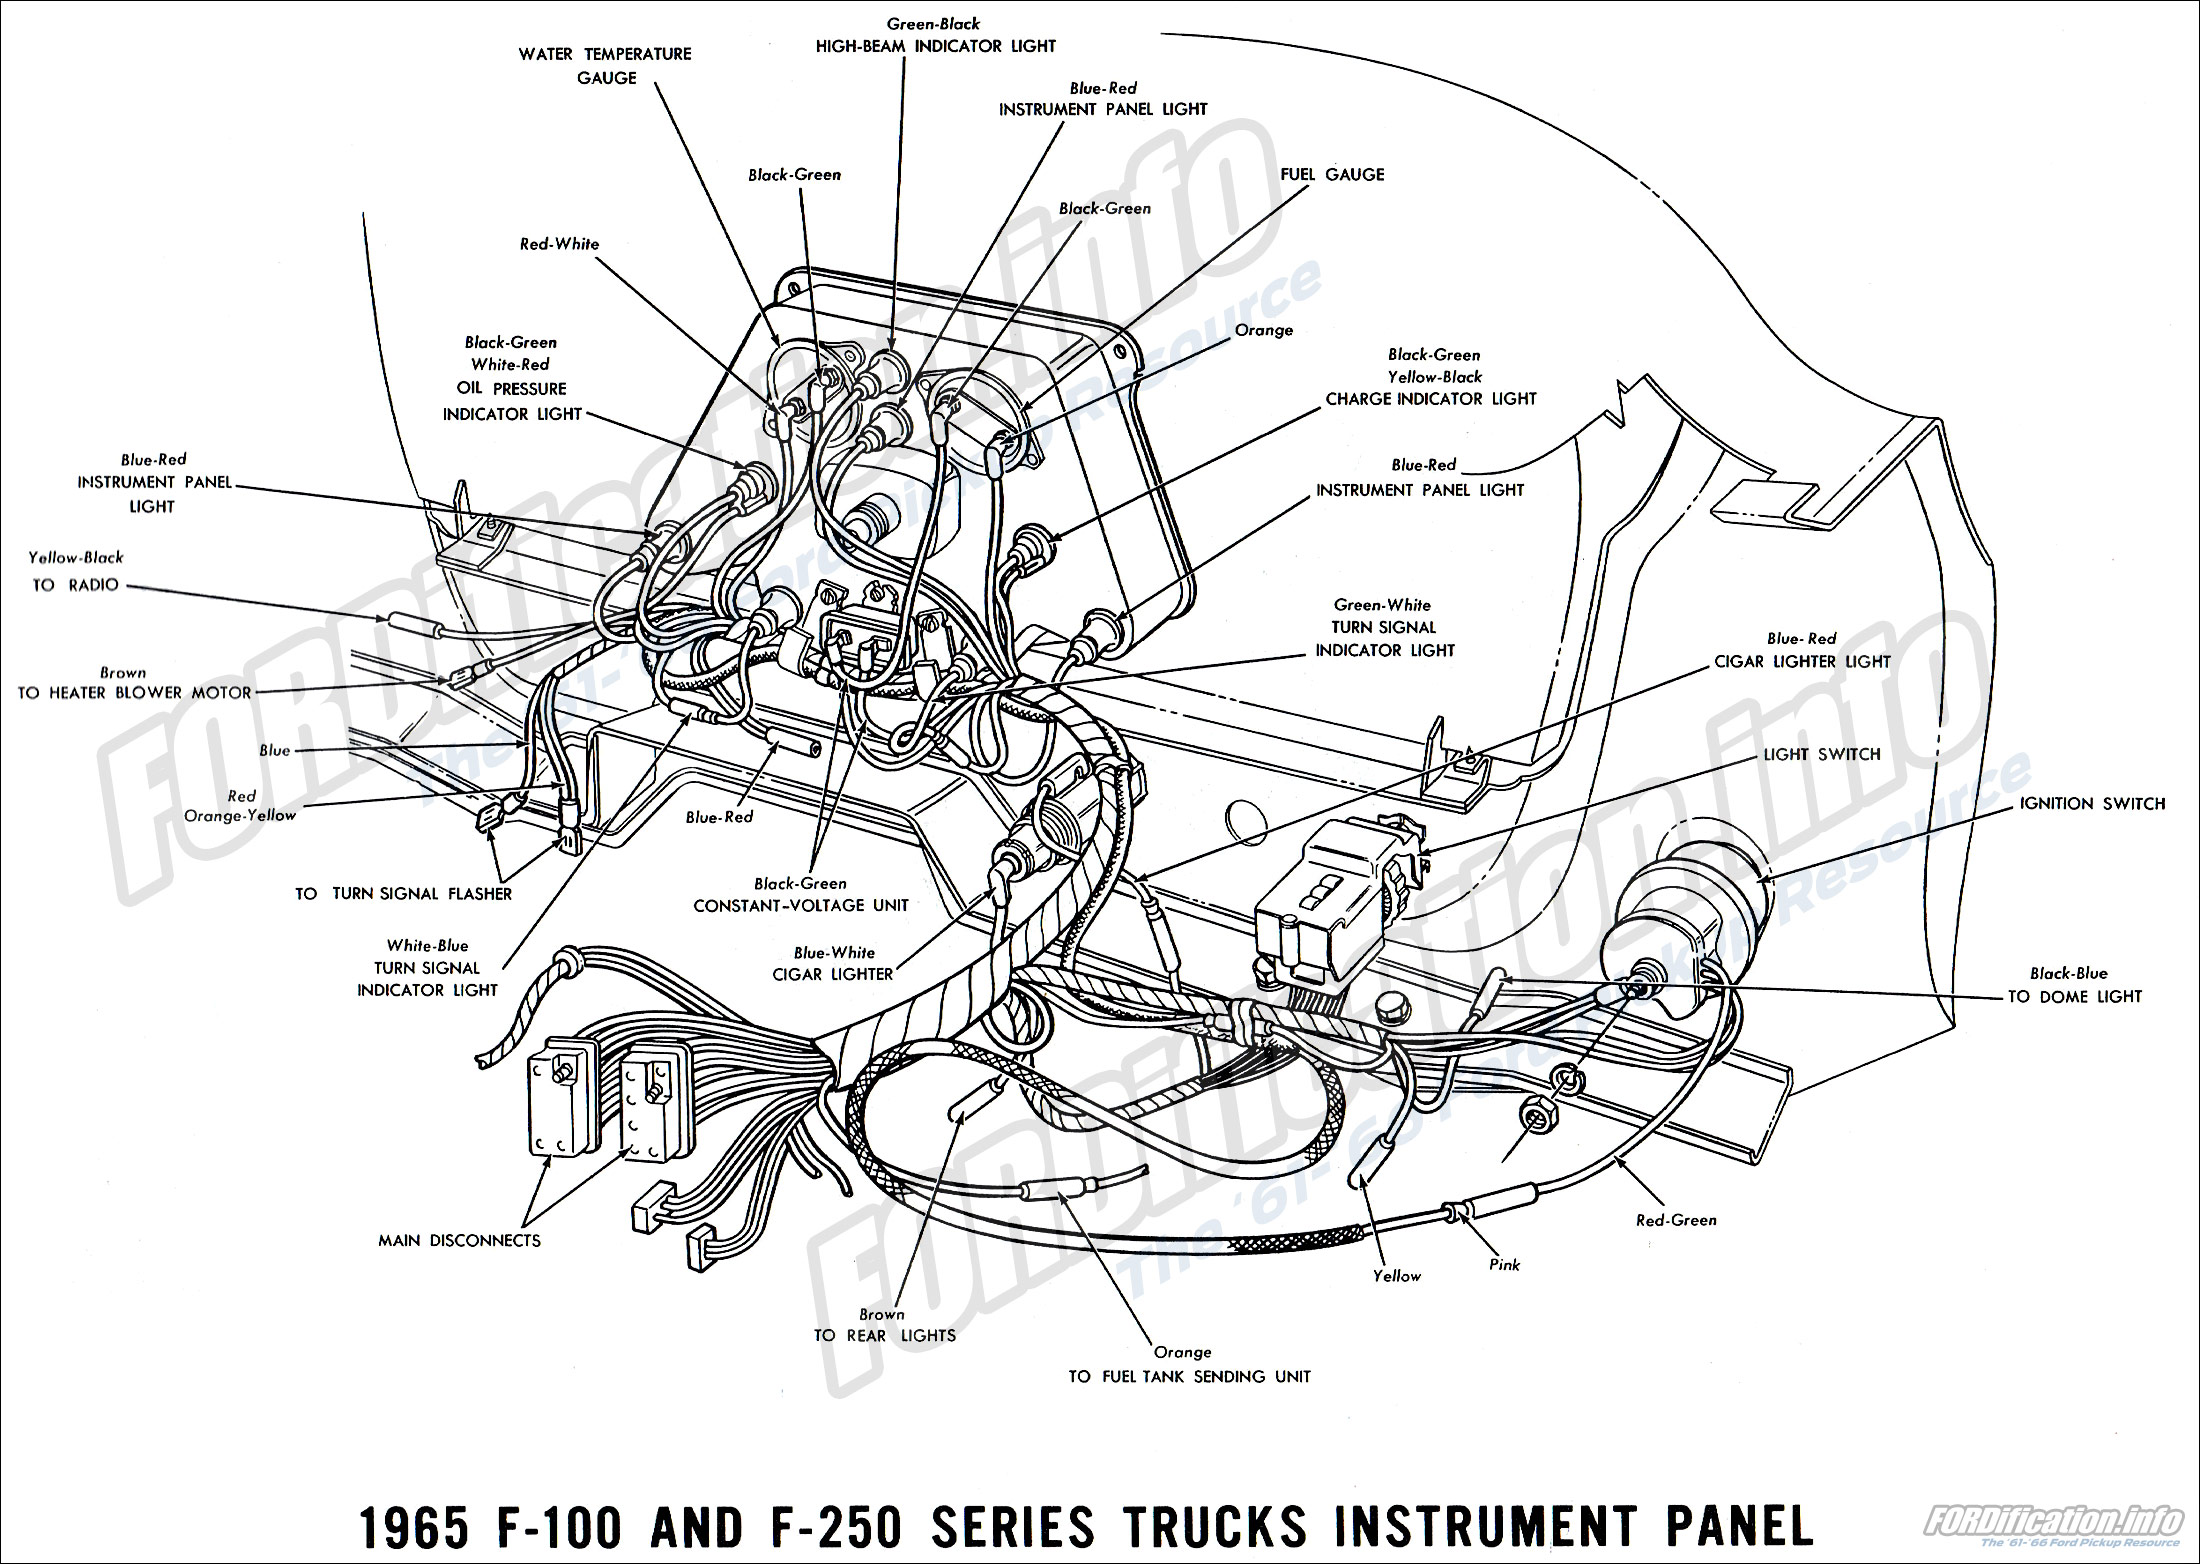 1965 ford truck wiring diagrams fordification info the 61 66 rh fordification info